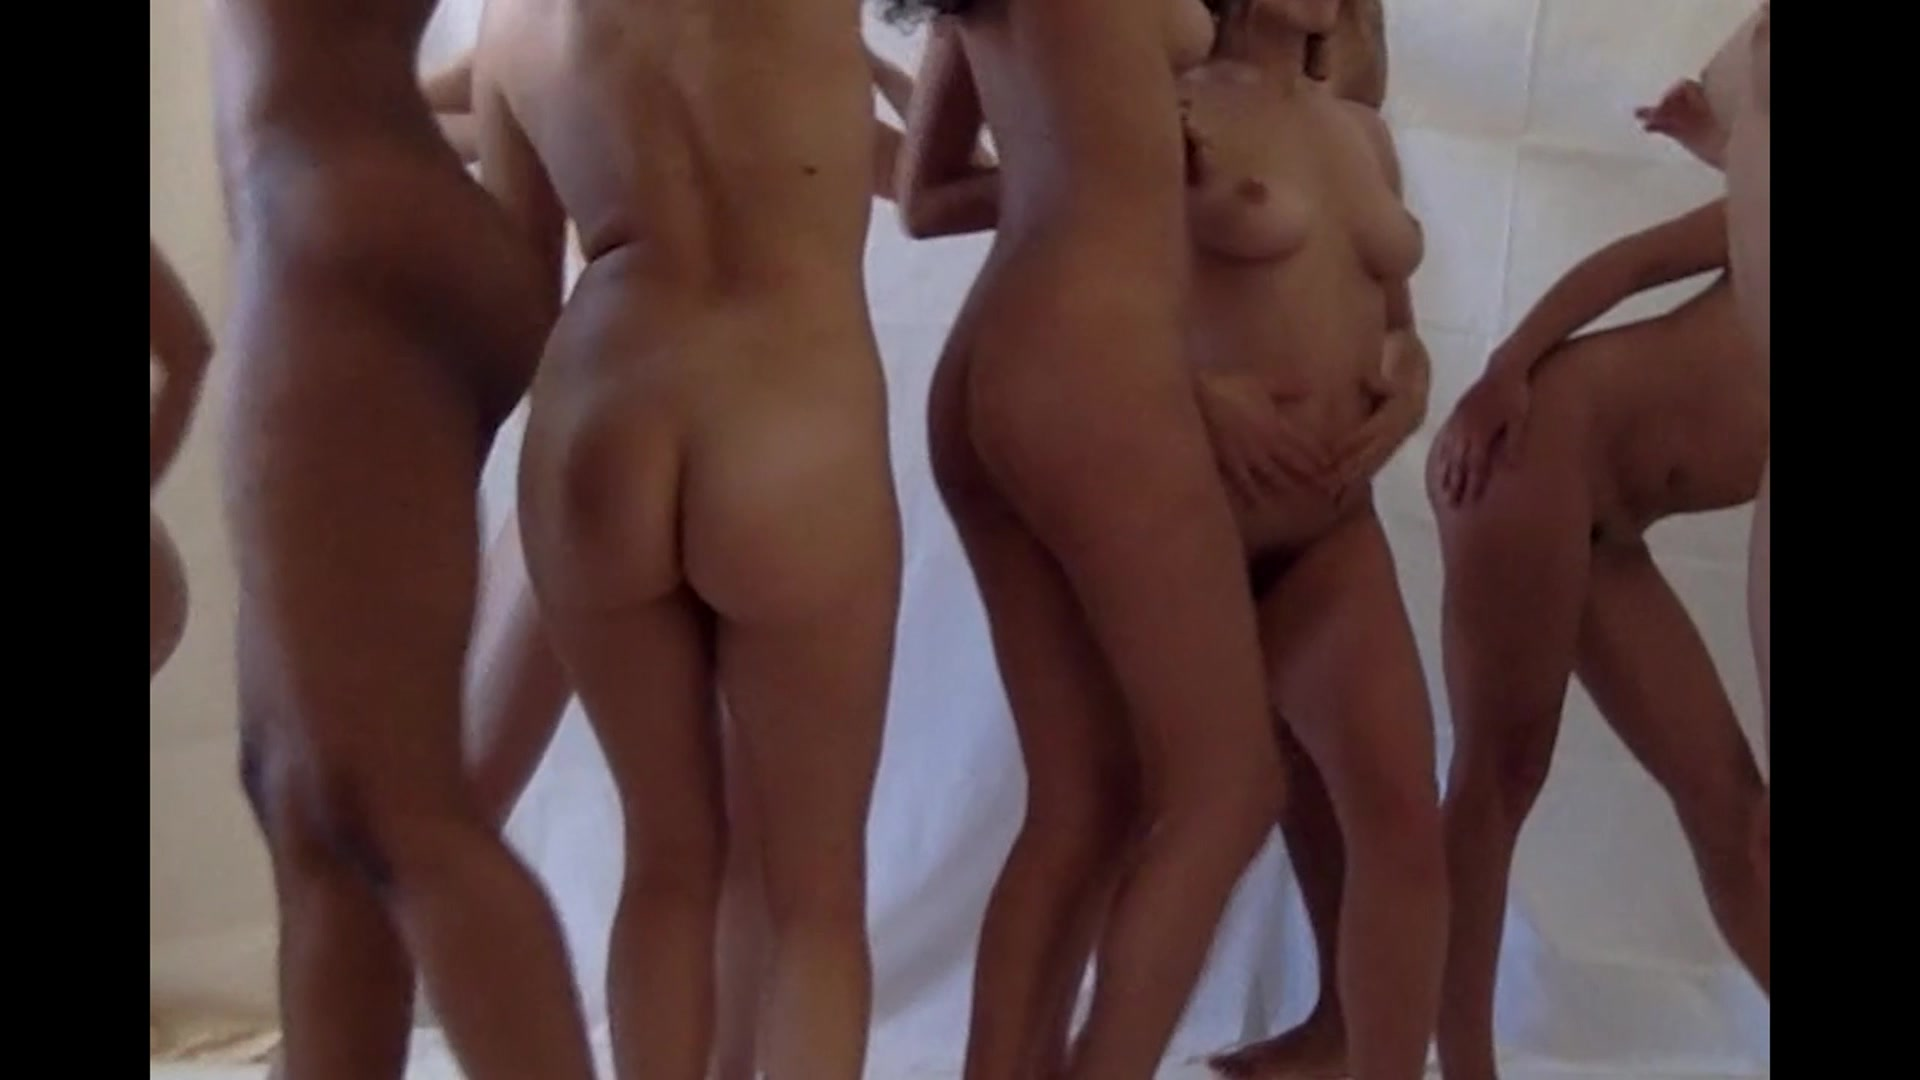 Naked On Stage Performance - Doris Uhlich - Final Nude Dance Video -7224